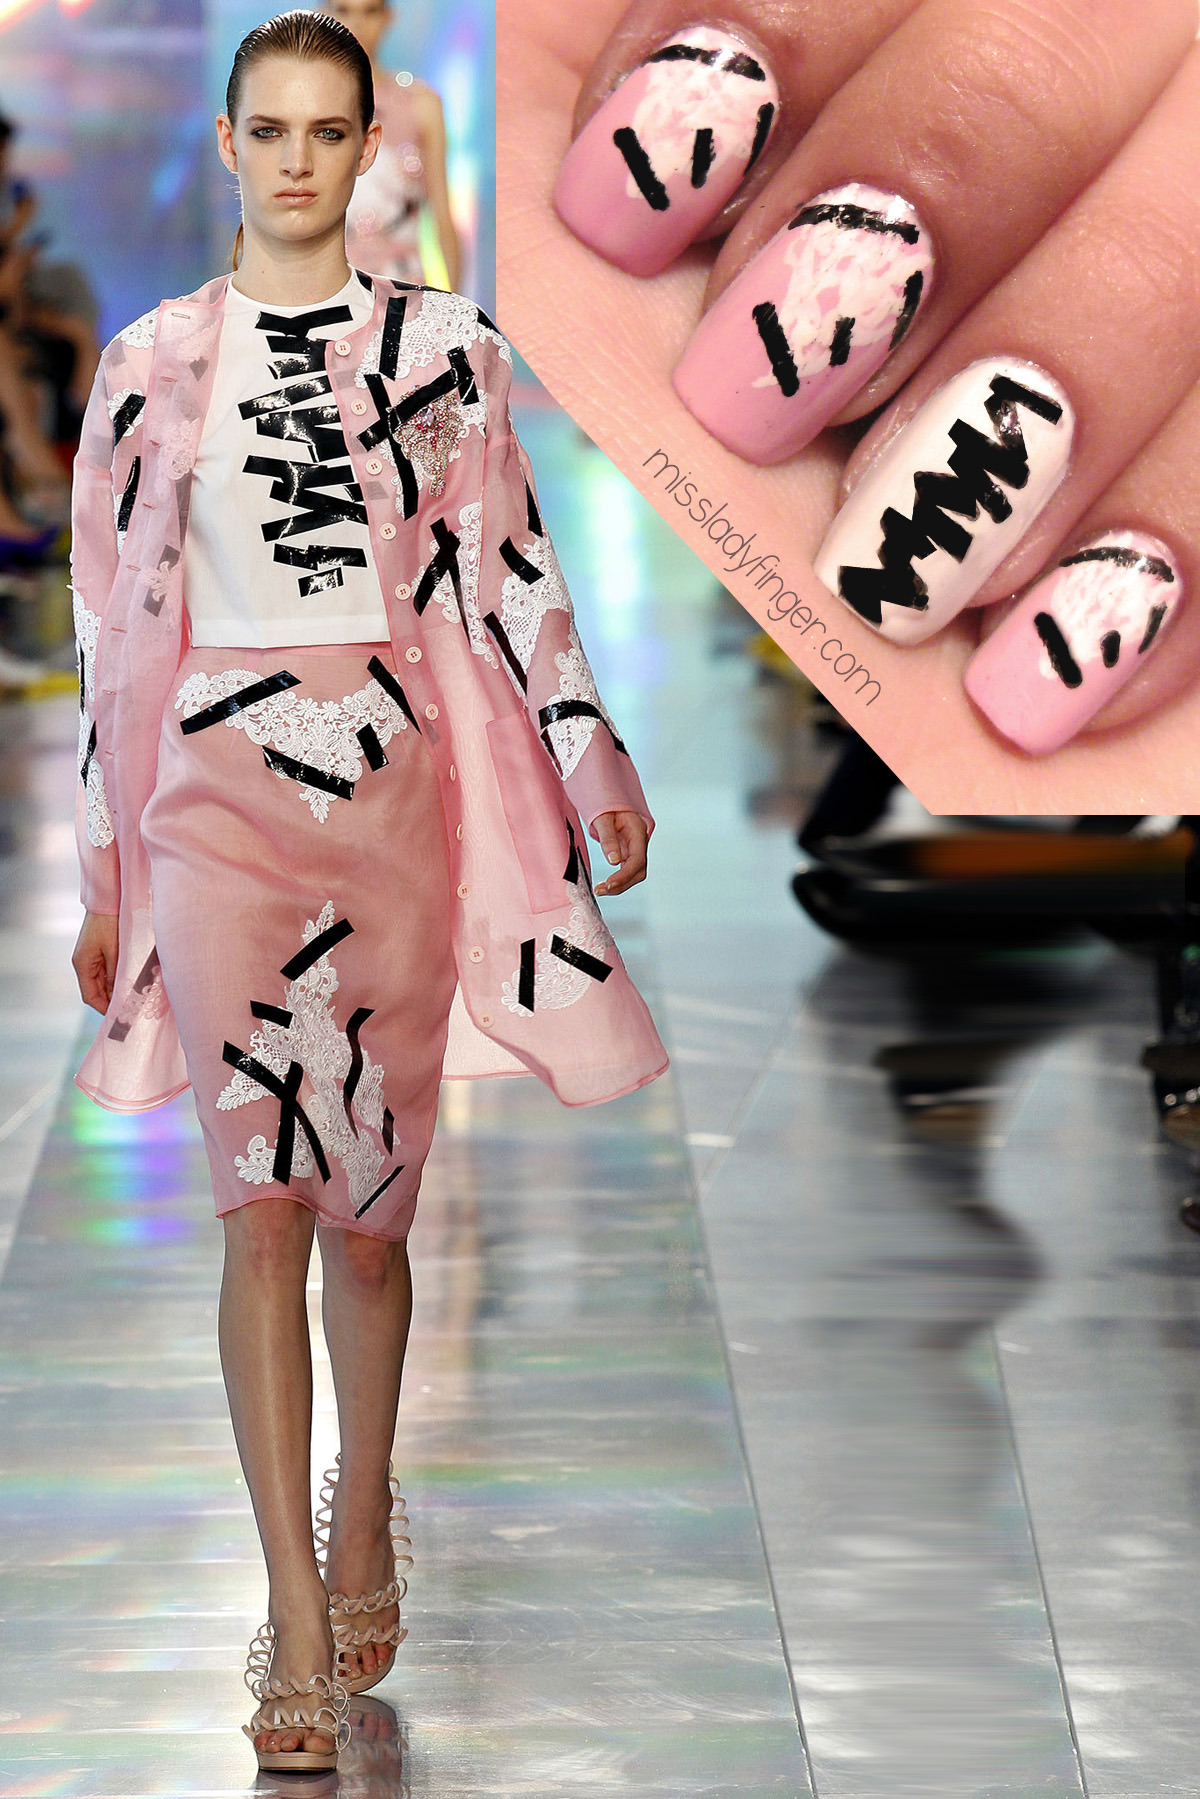 missladyfinger:  MANICURE MUSE: Christopher Kane Spring '13 Monster goth goes femme for Christopher Kane's quirky Spring '13 collection. Frankenstein gets the runway treatment quite literally as the source of inspiration. Offbeat details like rubbery bows and black electrical tape (pictured here) make ladylike looks an edge, but it's the Frankenstein screen tees that give the collection an electric jolt. I'm going to need one of those ASAP. Click here for nail colors and step-by-step instructions!